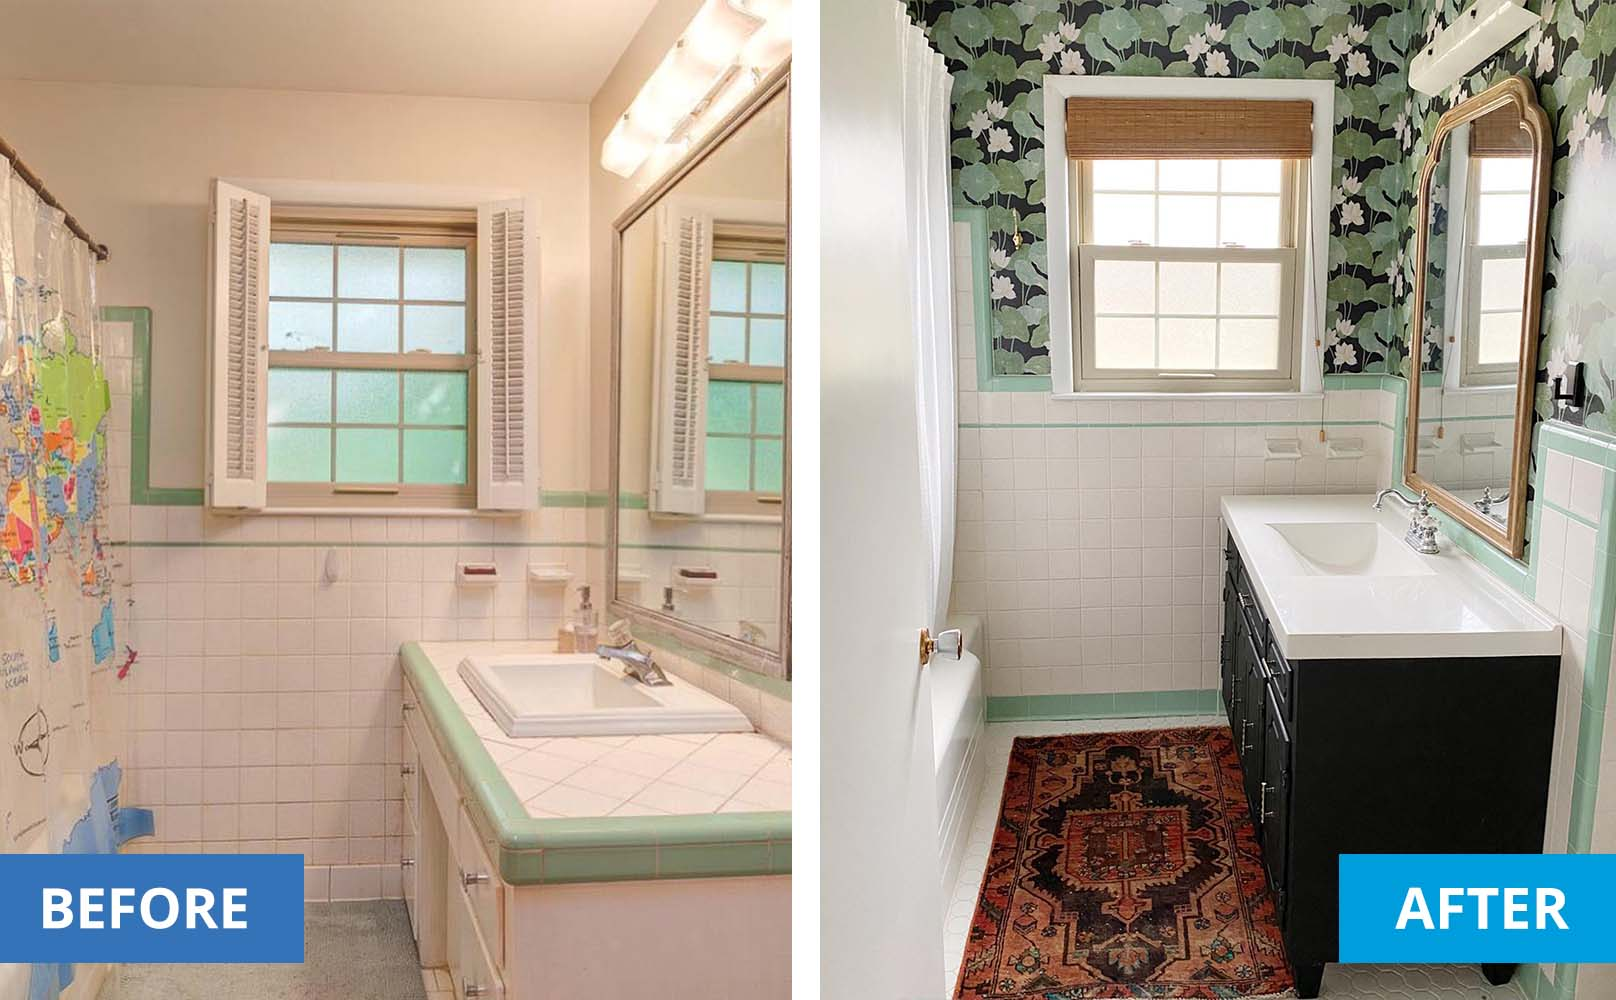 left is a kitschy tiles bathroom. Right shows the same bathroom. with fresh wallpaper, woven wood shades and a new vanity.